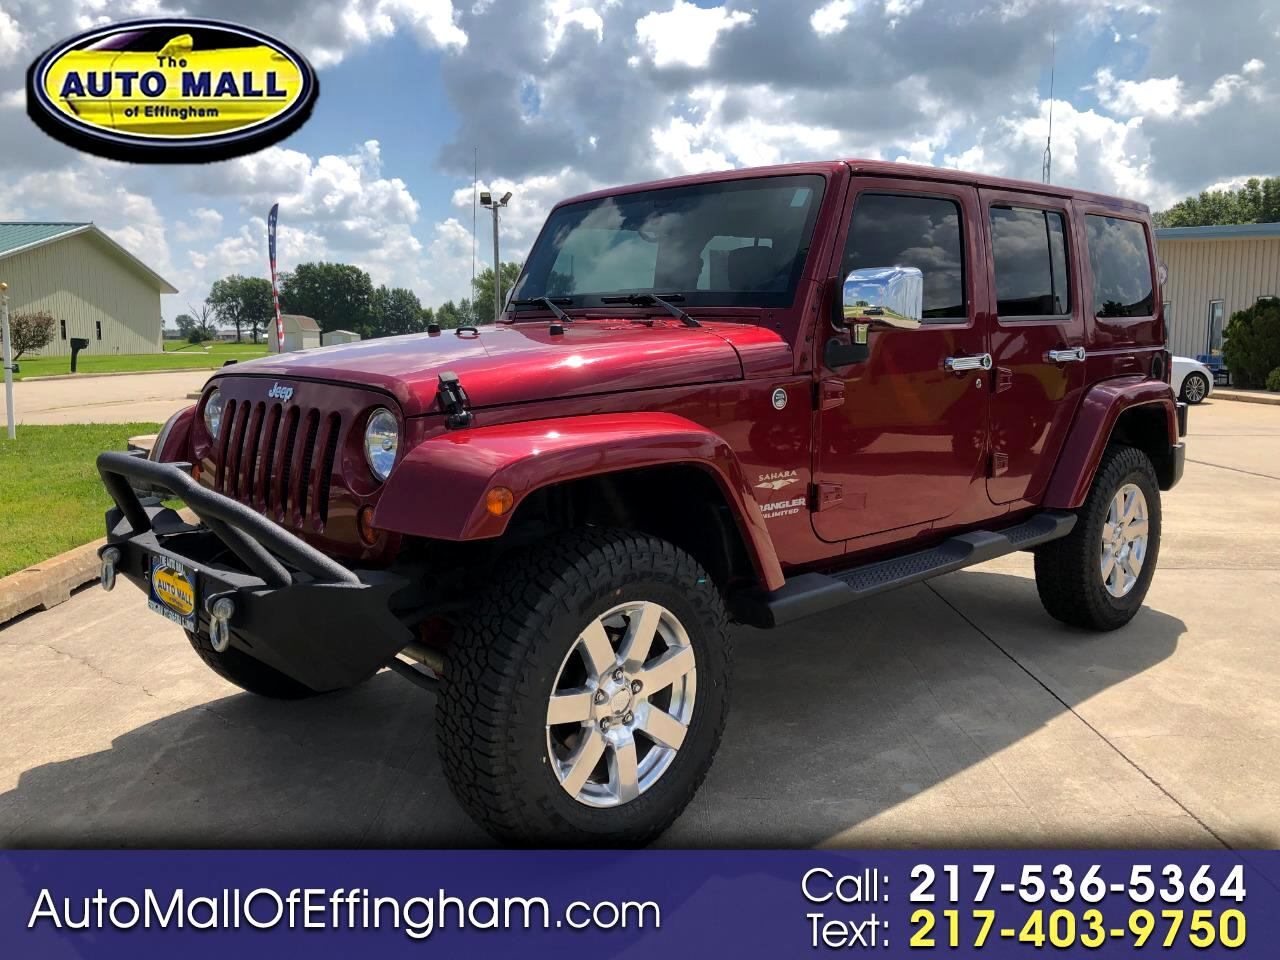 2013 Jeep Wrangler Unlimited 4WD 4dr Sahara